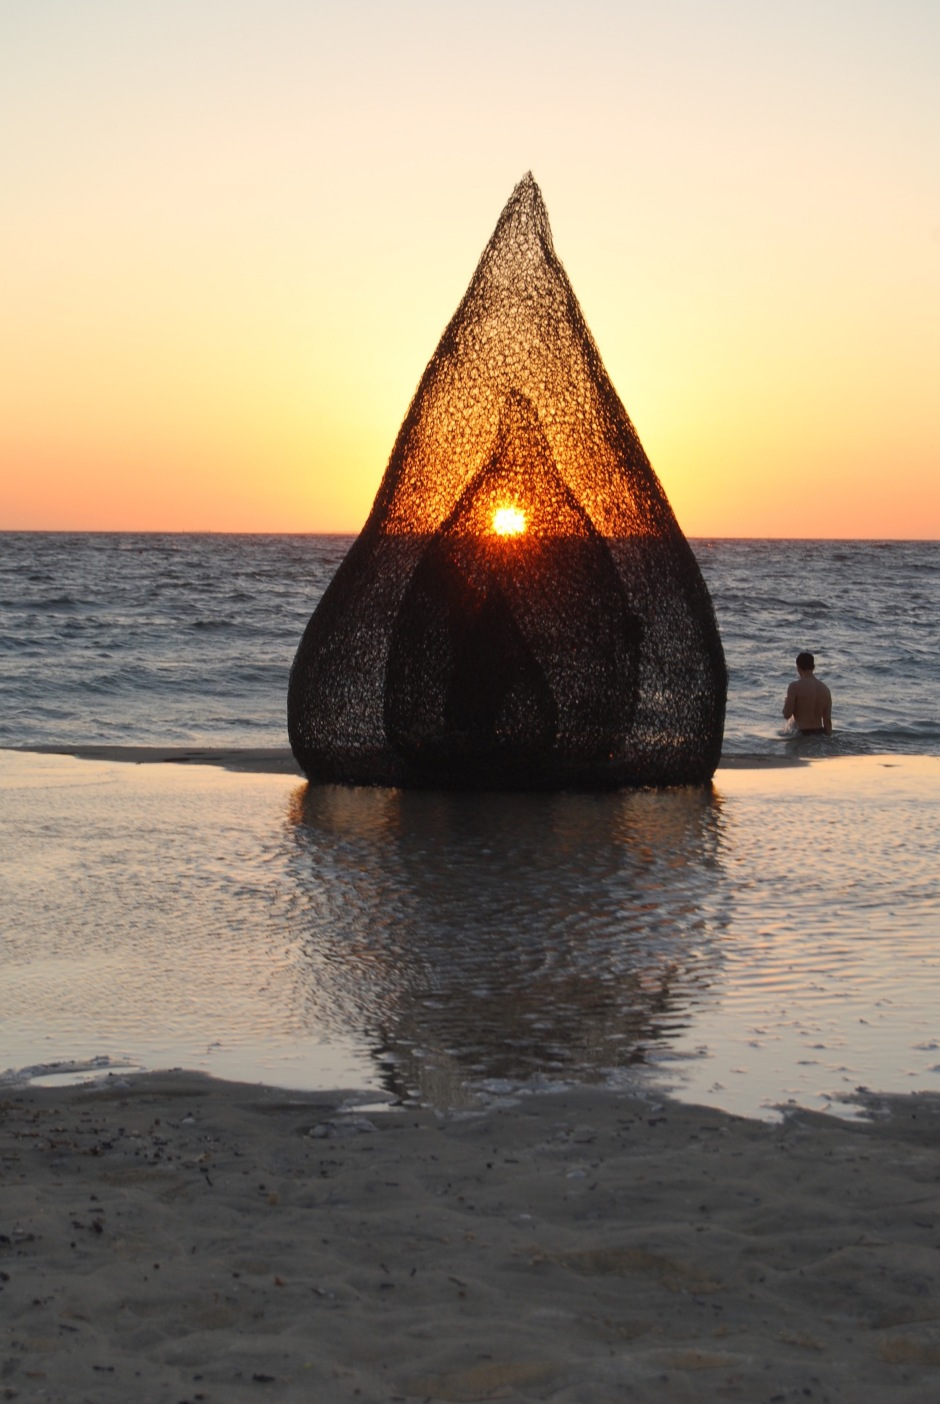 4. SallyStoneman_Flame_Sculpturebythesea_Cottesloe_RecycledDingoProofFence_2.1x1.6x1.5M_2019